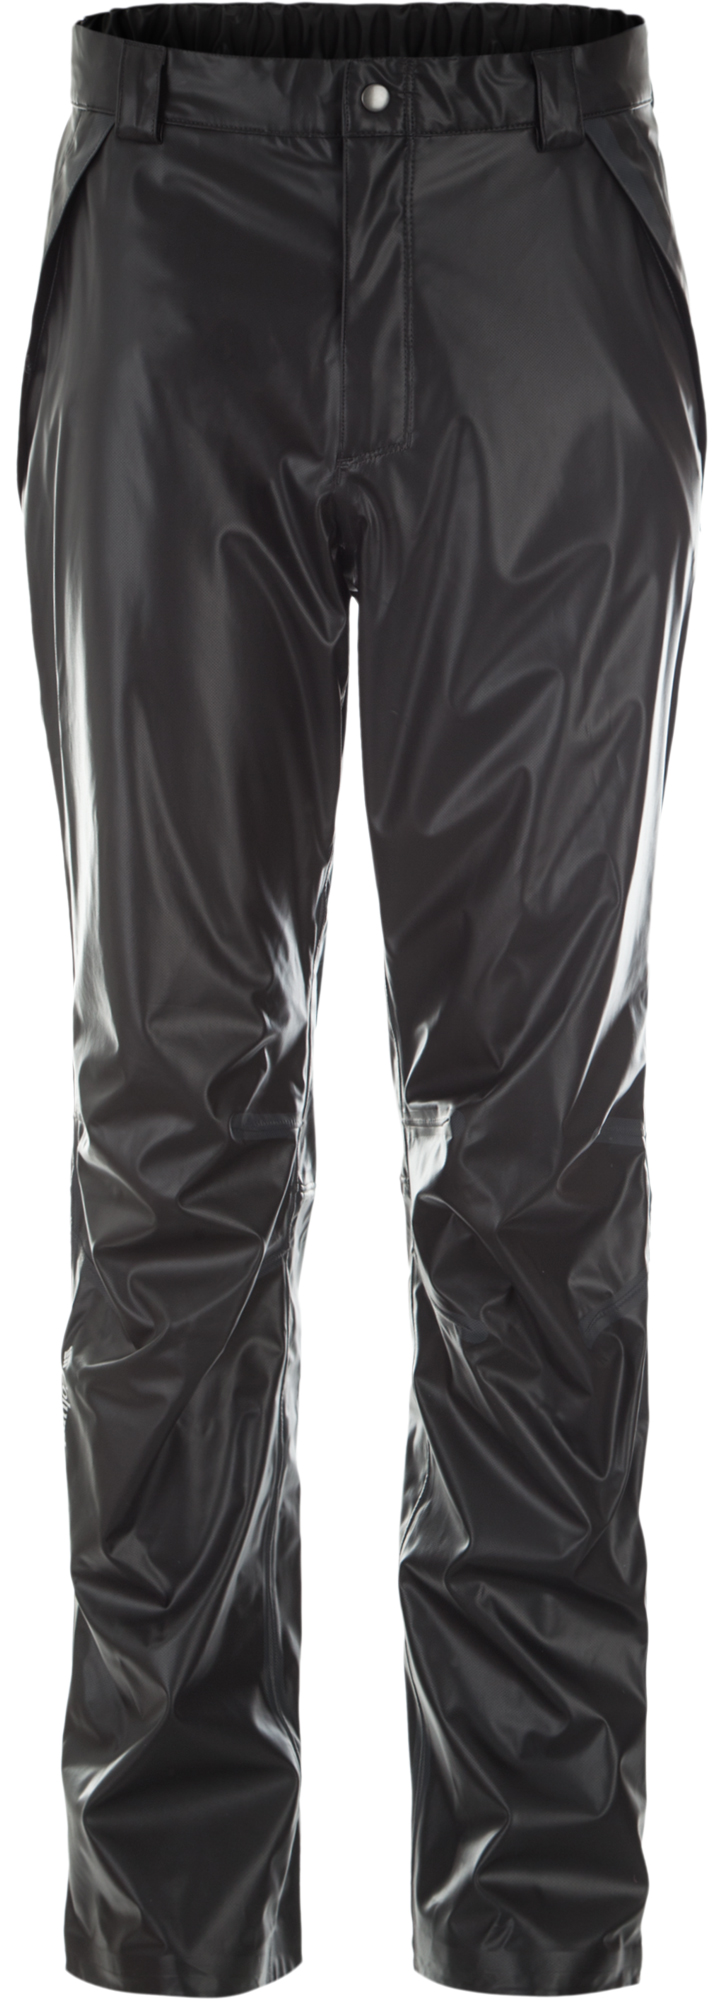 Columbia Брюки мужские Columbia OutDry Ex Stretch, размер 52-54